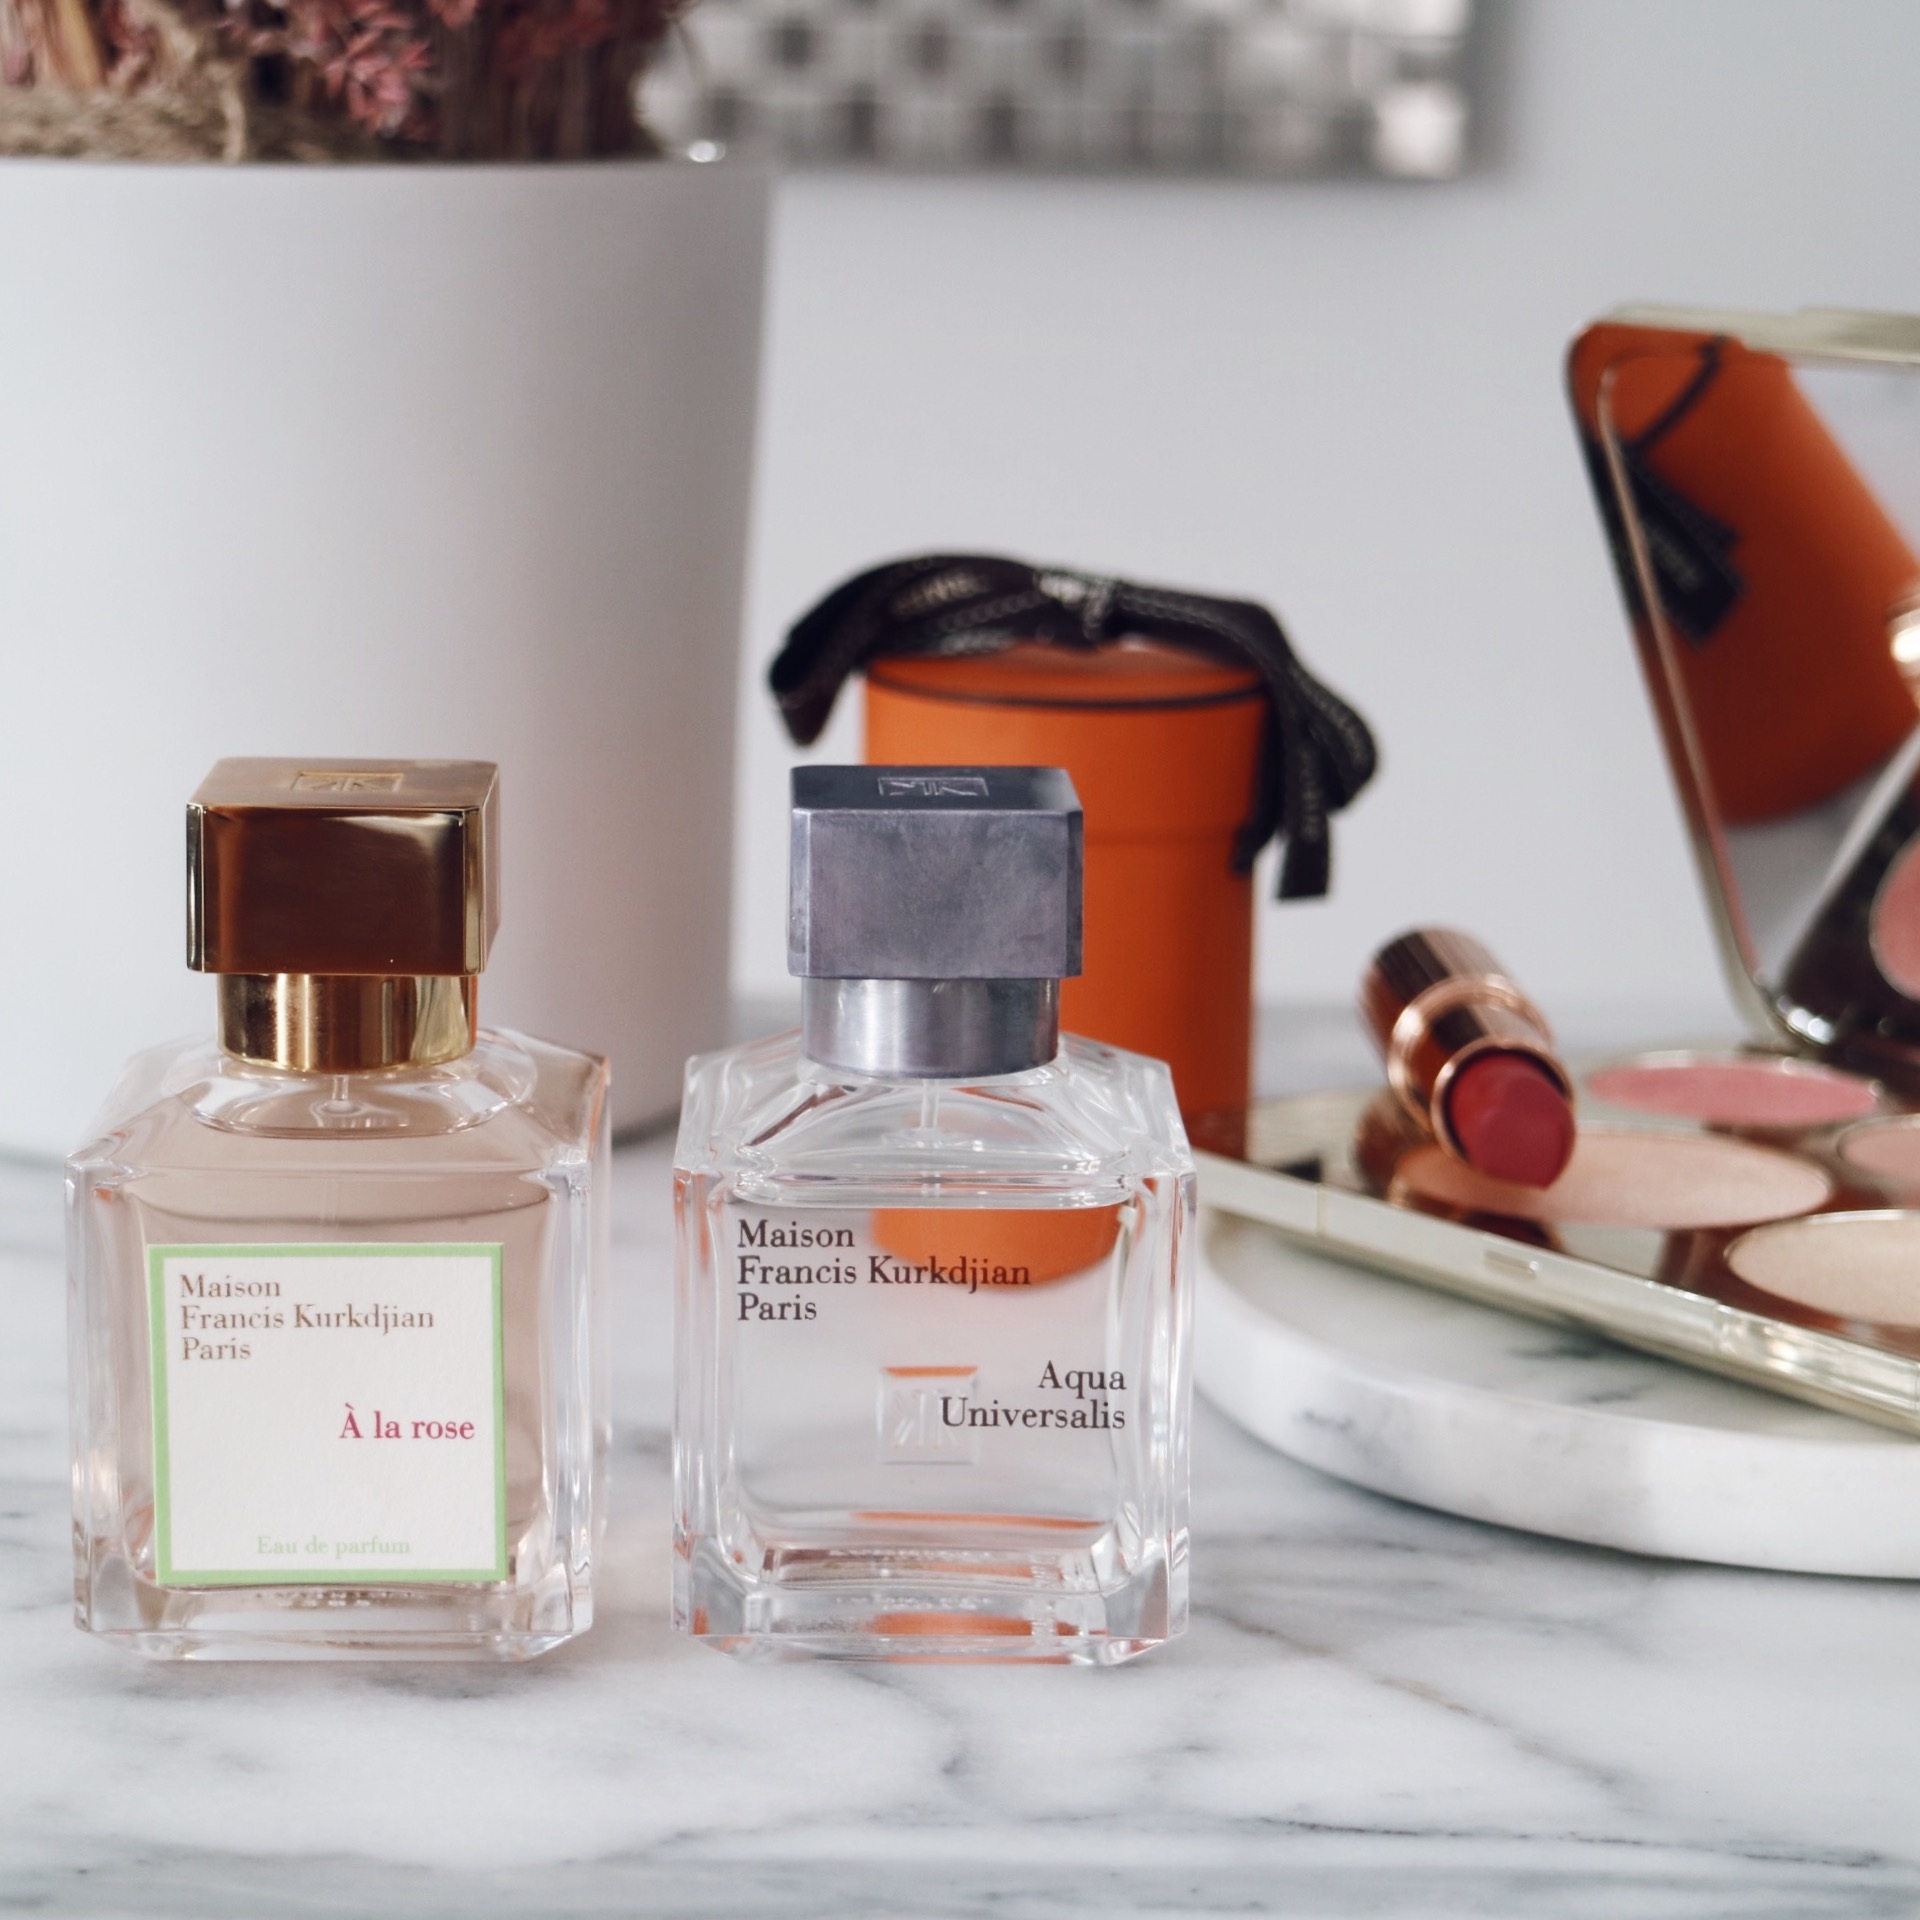 5 OF MY FAVOURITE LUXE ITEMS - WOAHSTYLE.COM_8737.JPG